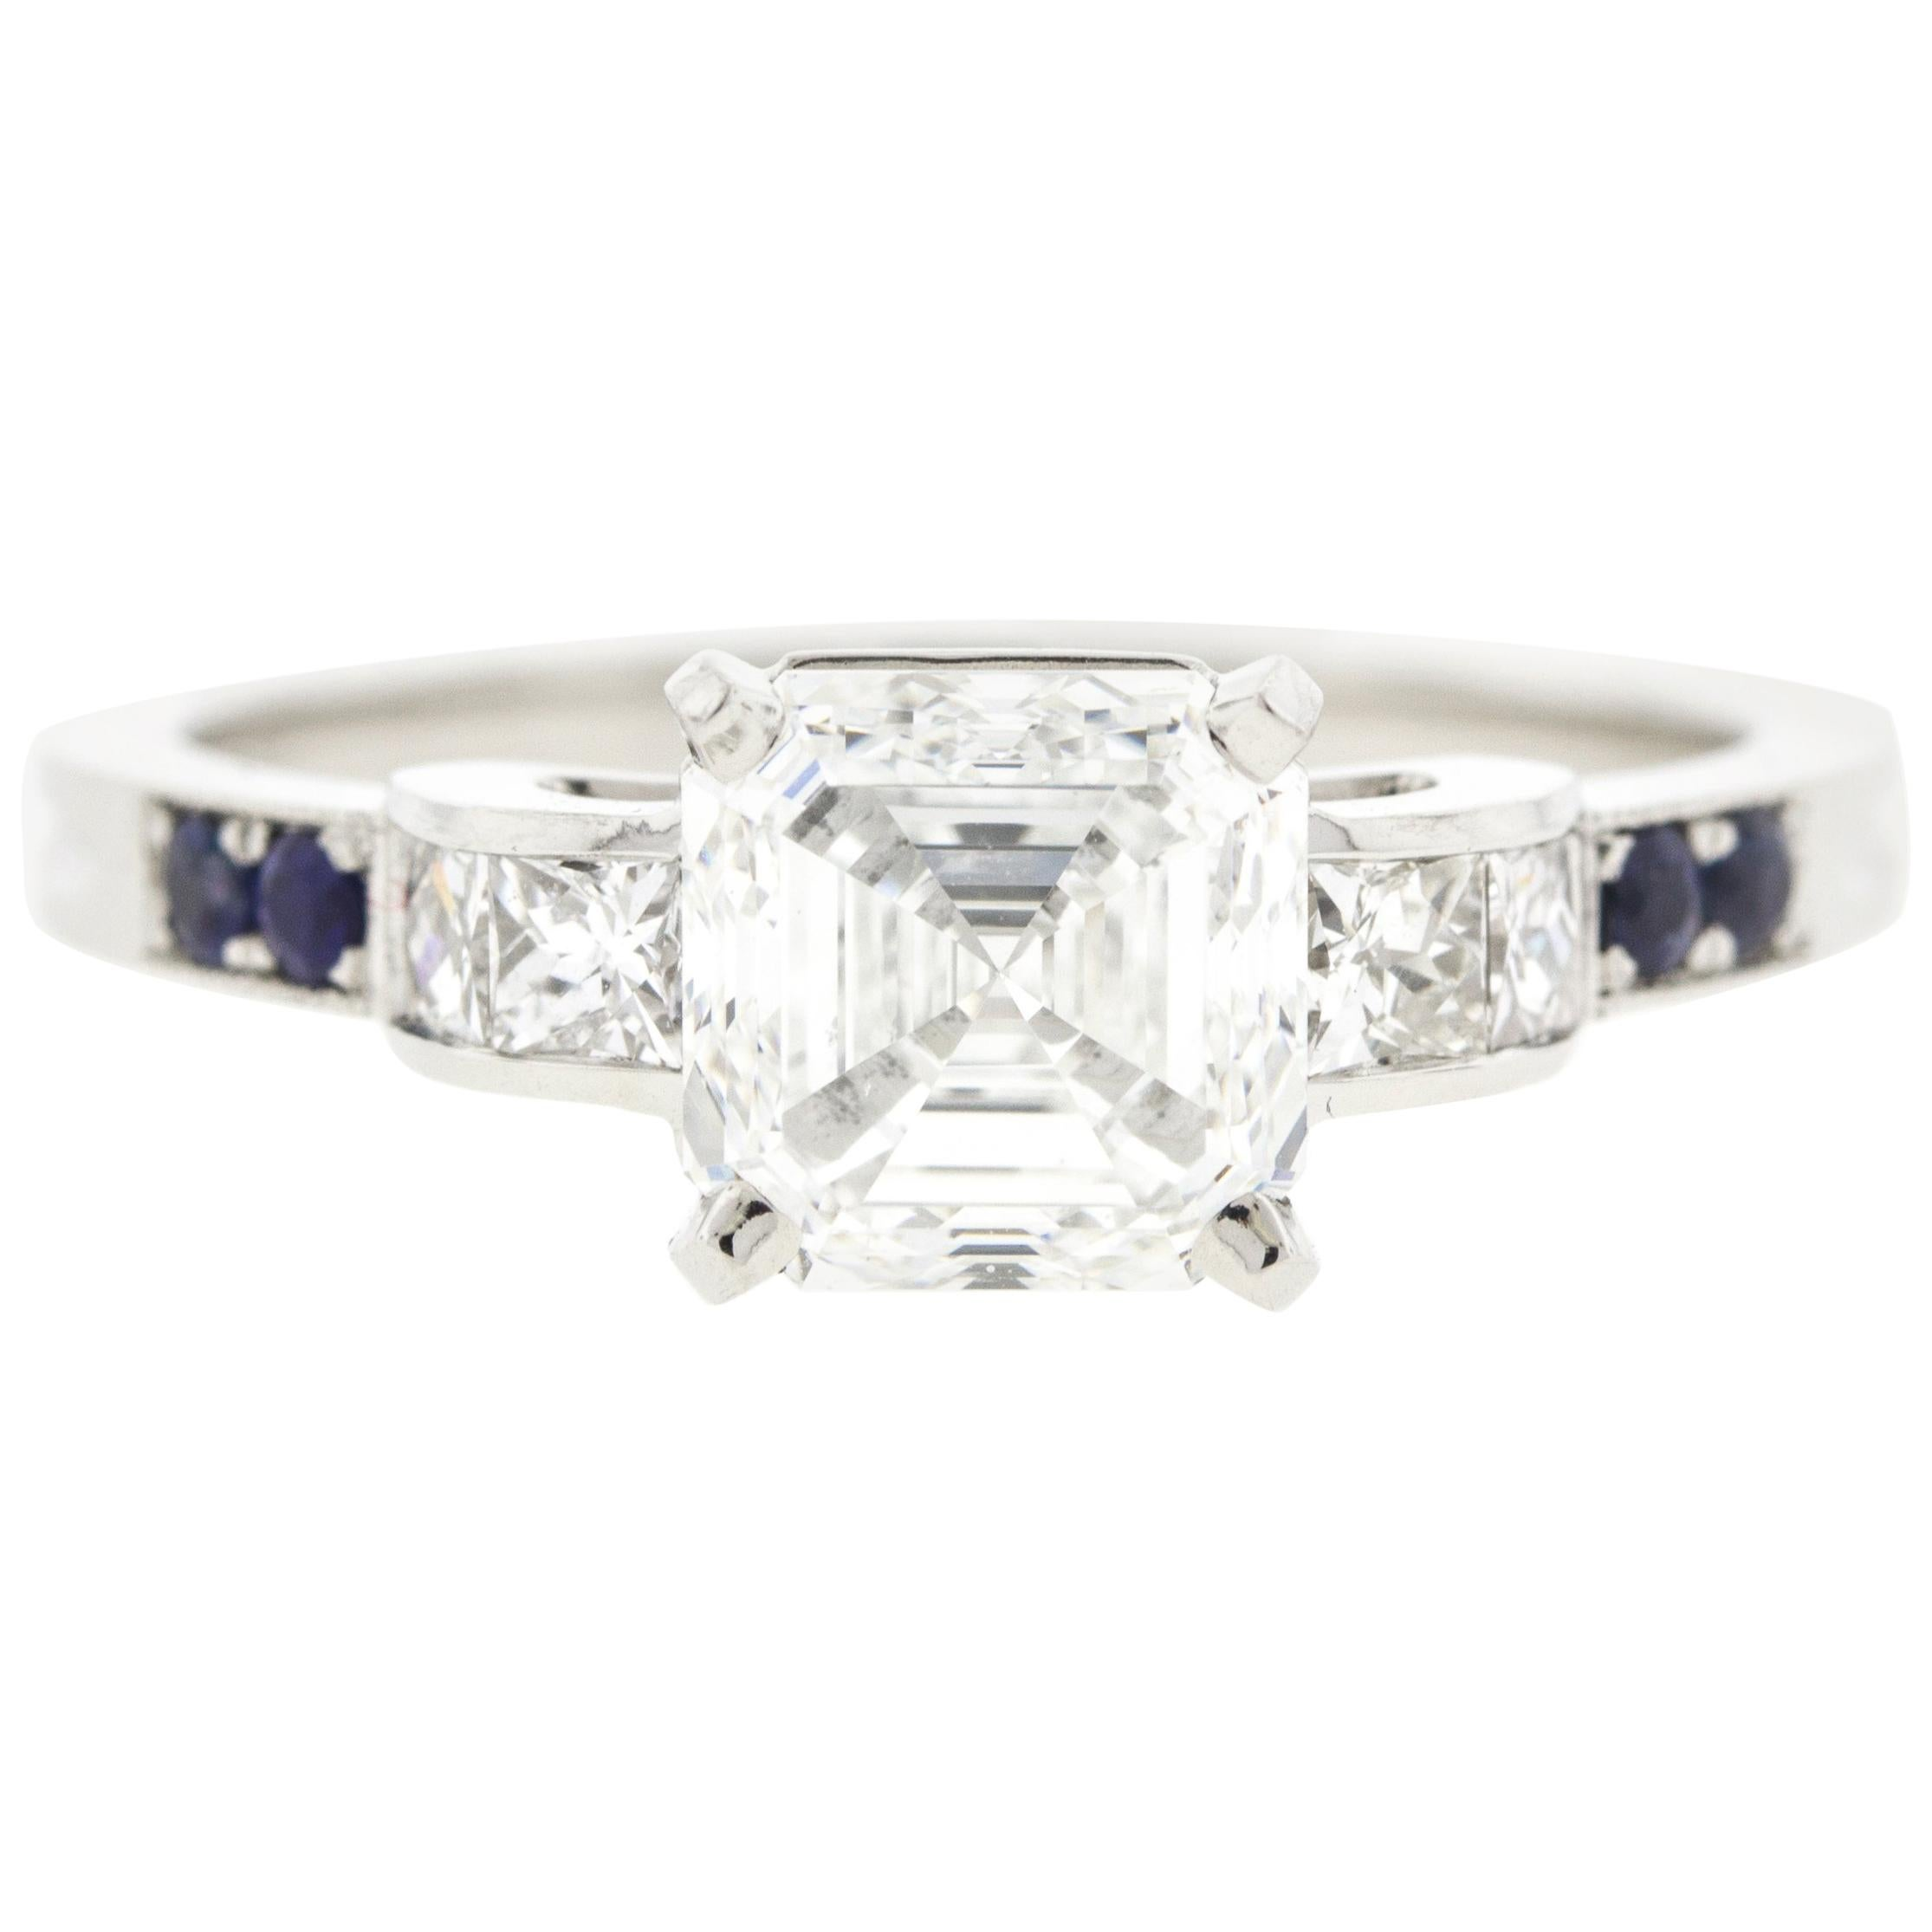 Vintage Asscher Diamond Engagement Ring with Channel Set Diamonds & Sapphires